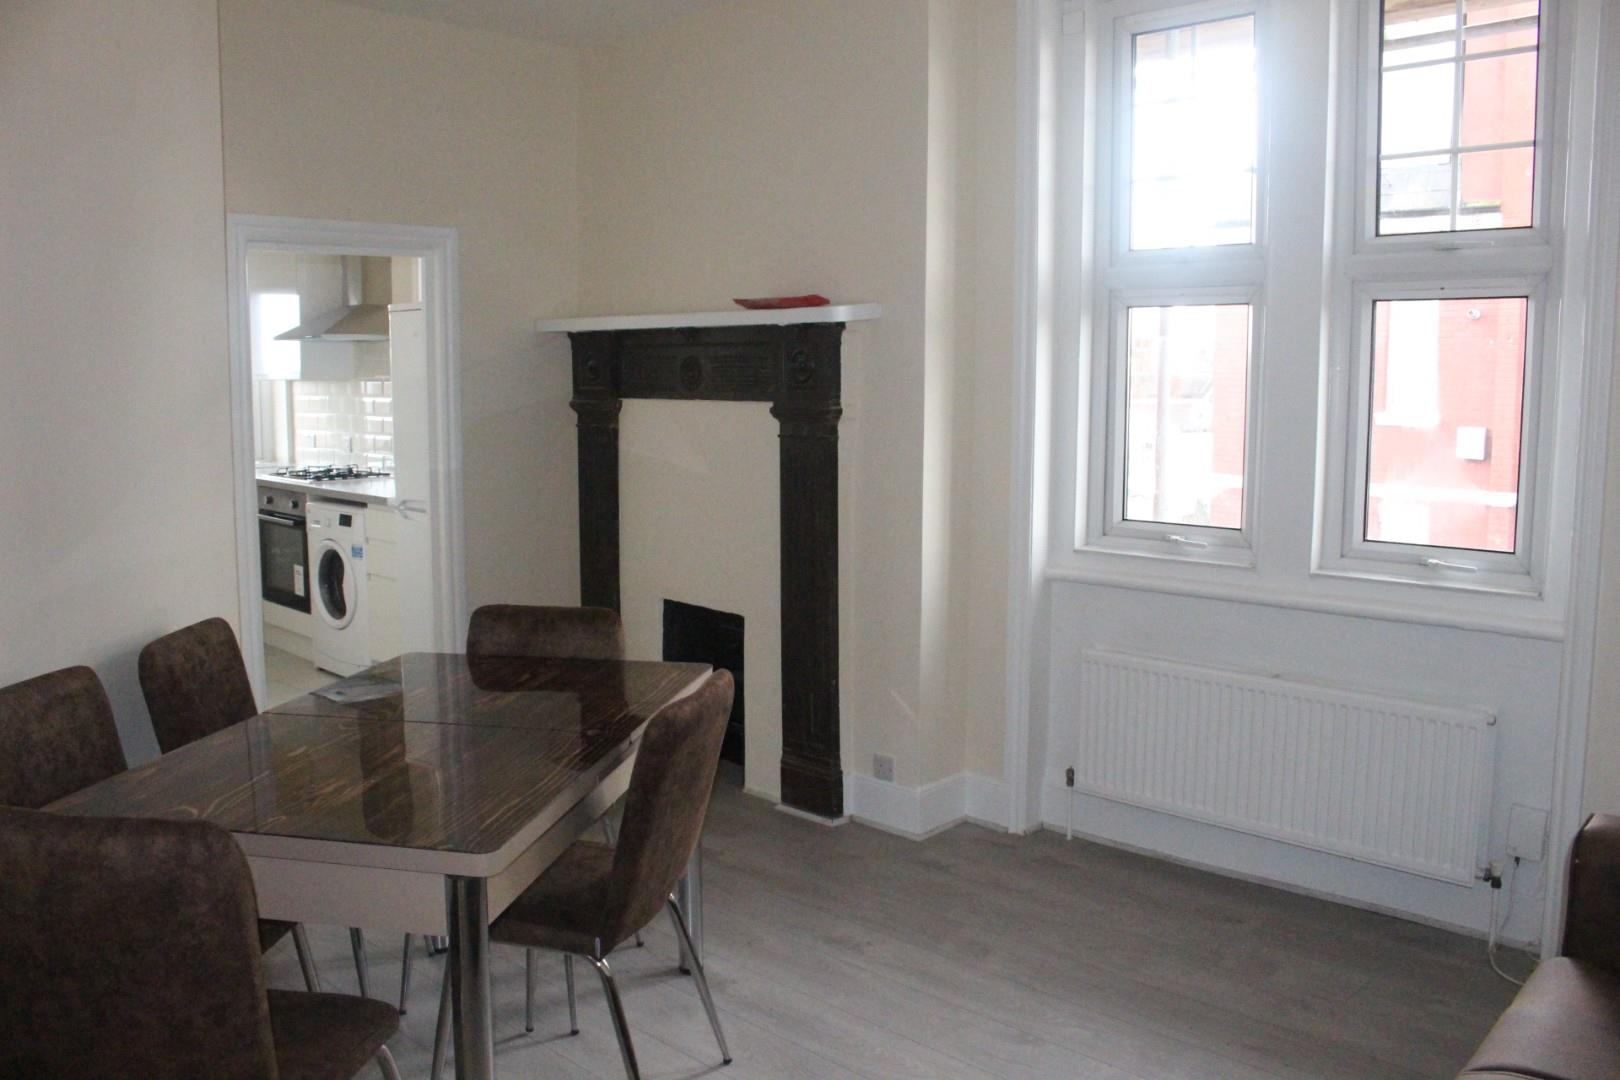 3 Bedroom Brand New Flat For Rent in Haringey